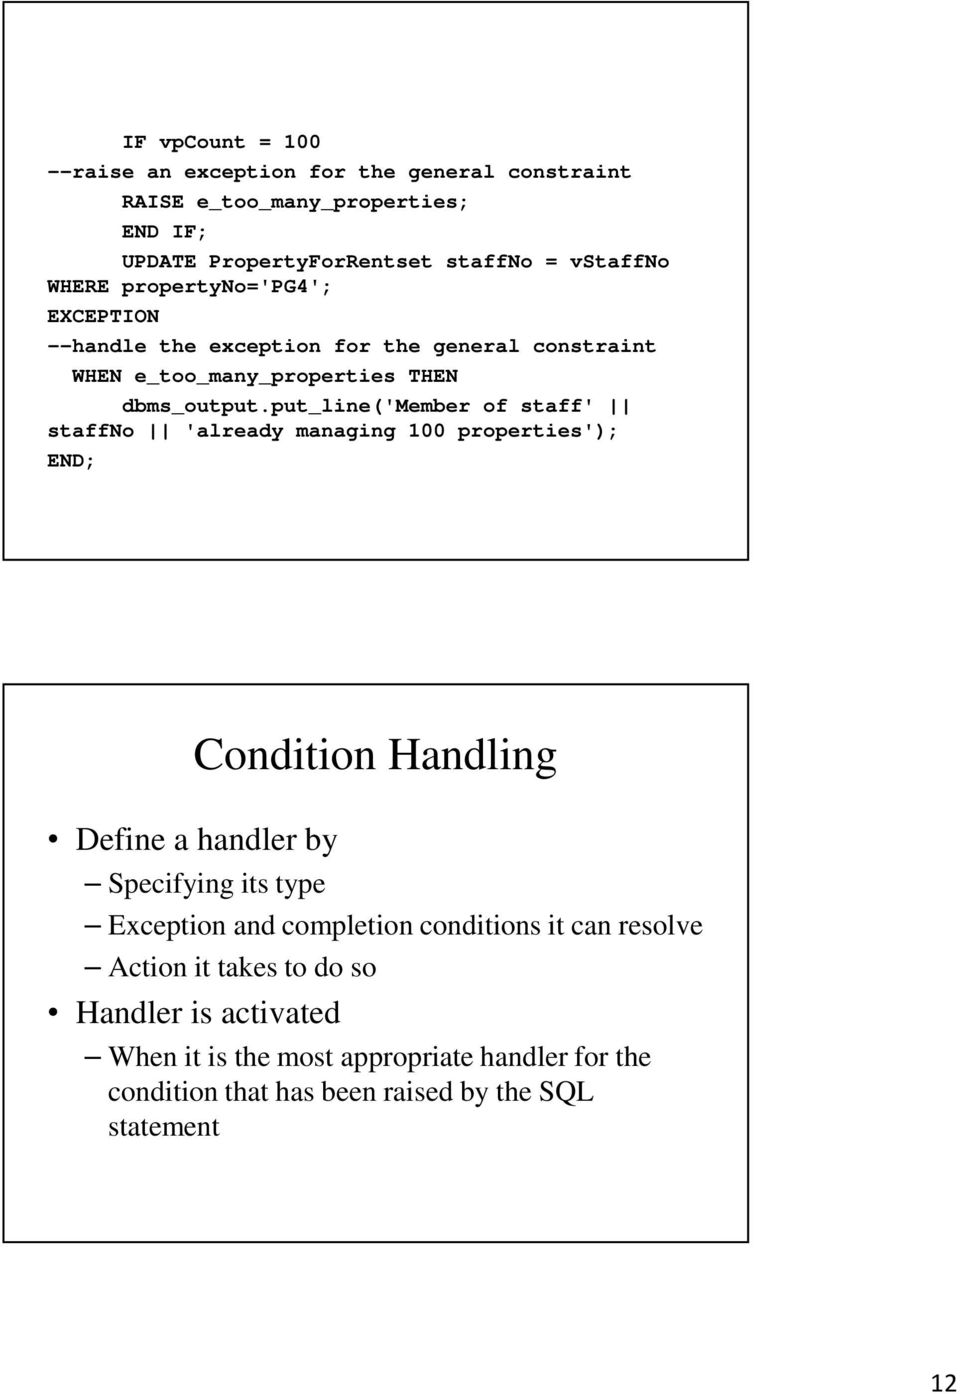 put_line('member of staff' staffno 'already managing 100 properties'); END; Define a handler by Condition Handling Specifying its type Exception and